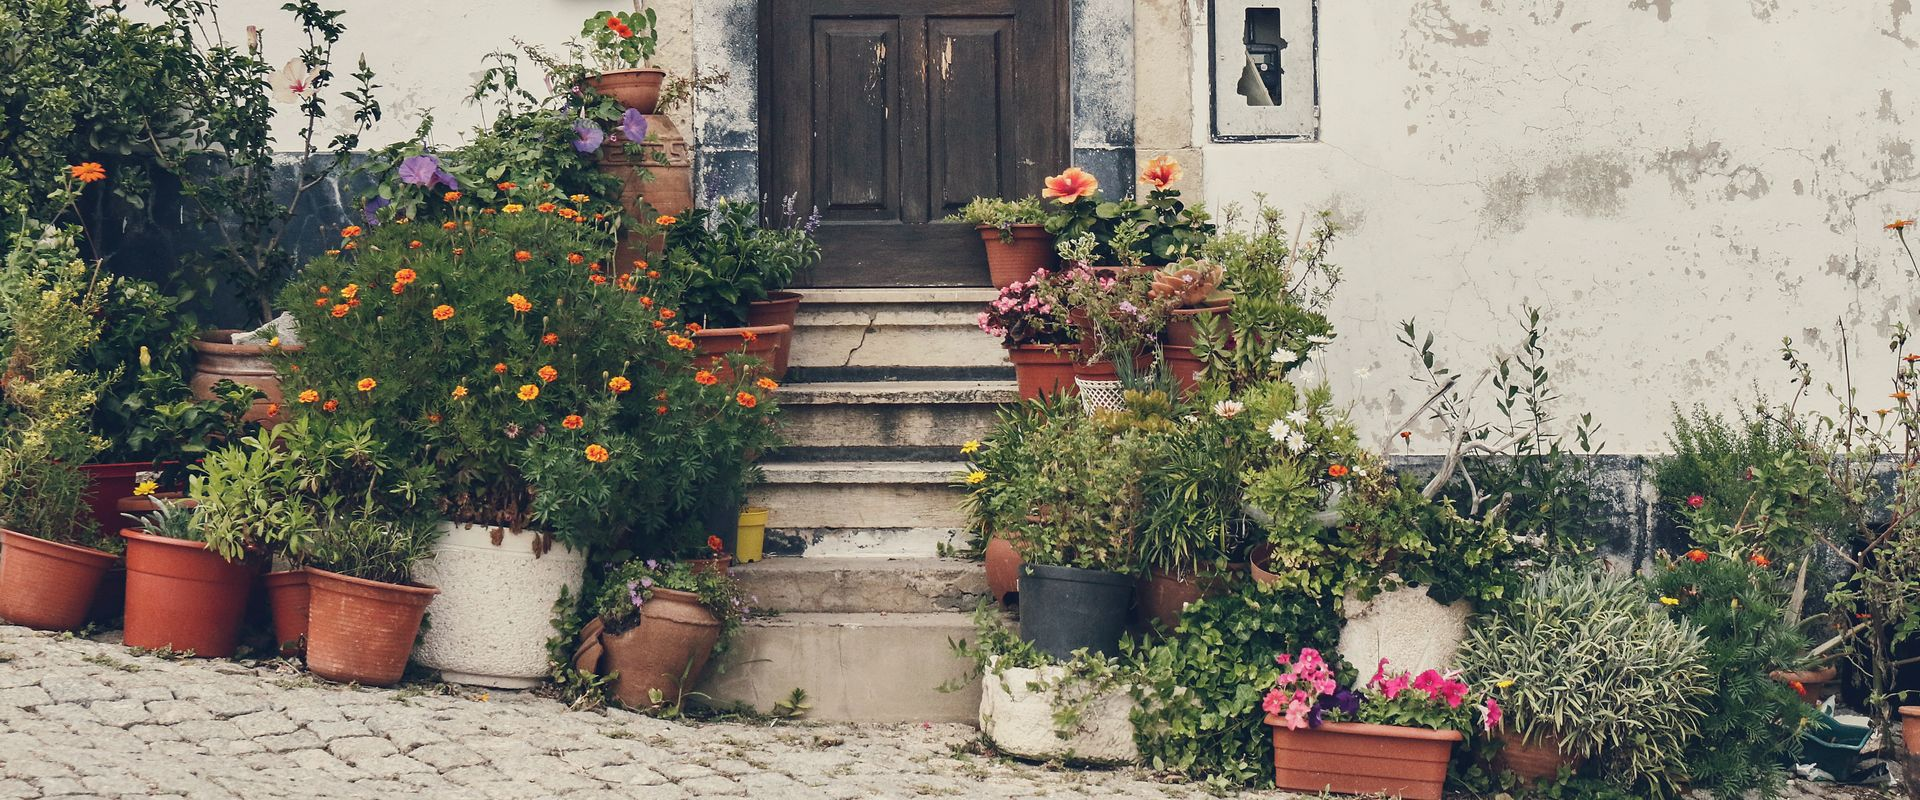 flowers and house